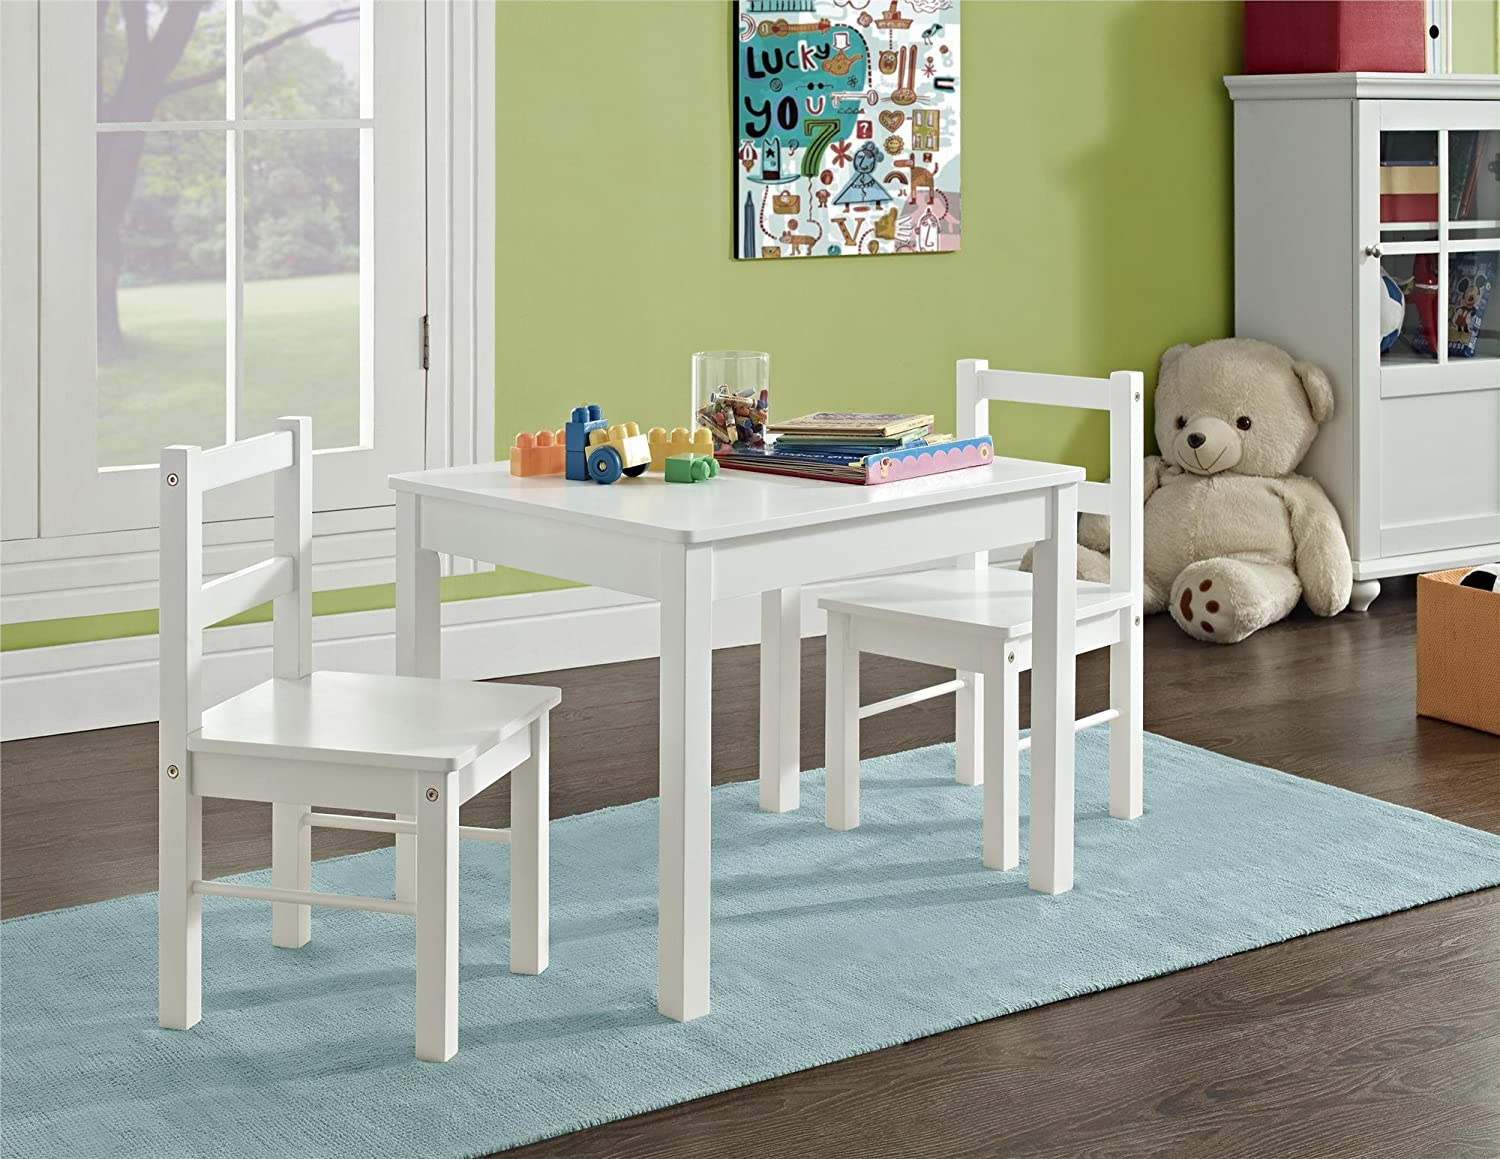 Amazon.com Ameriwood Home Hazel Kidu0027s Table and Chairs Set White Kitchen u0026 Dining & Amazon.com: Ameriwood Home Hazel Kidu0027s Table and Chairs Set White ...